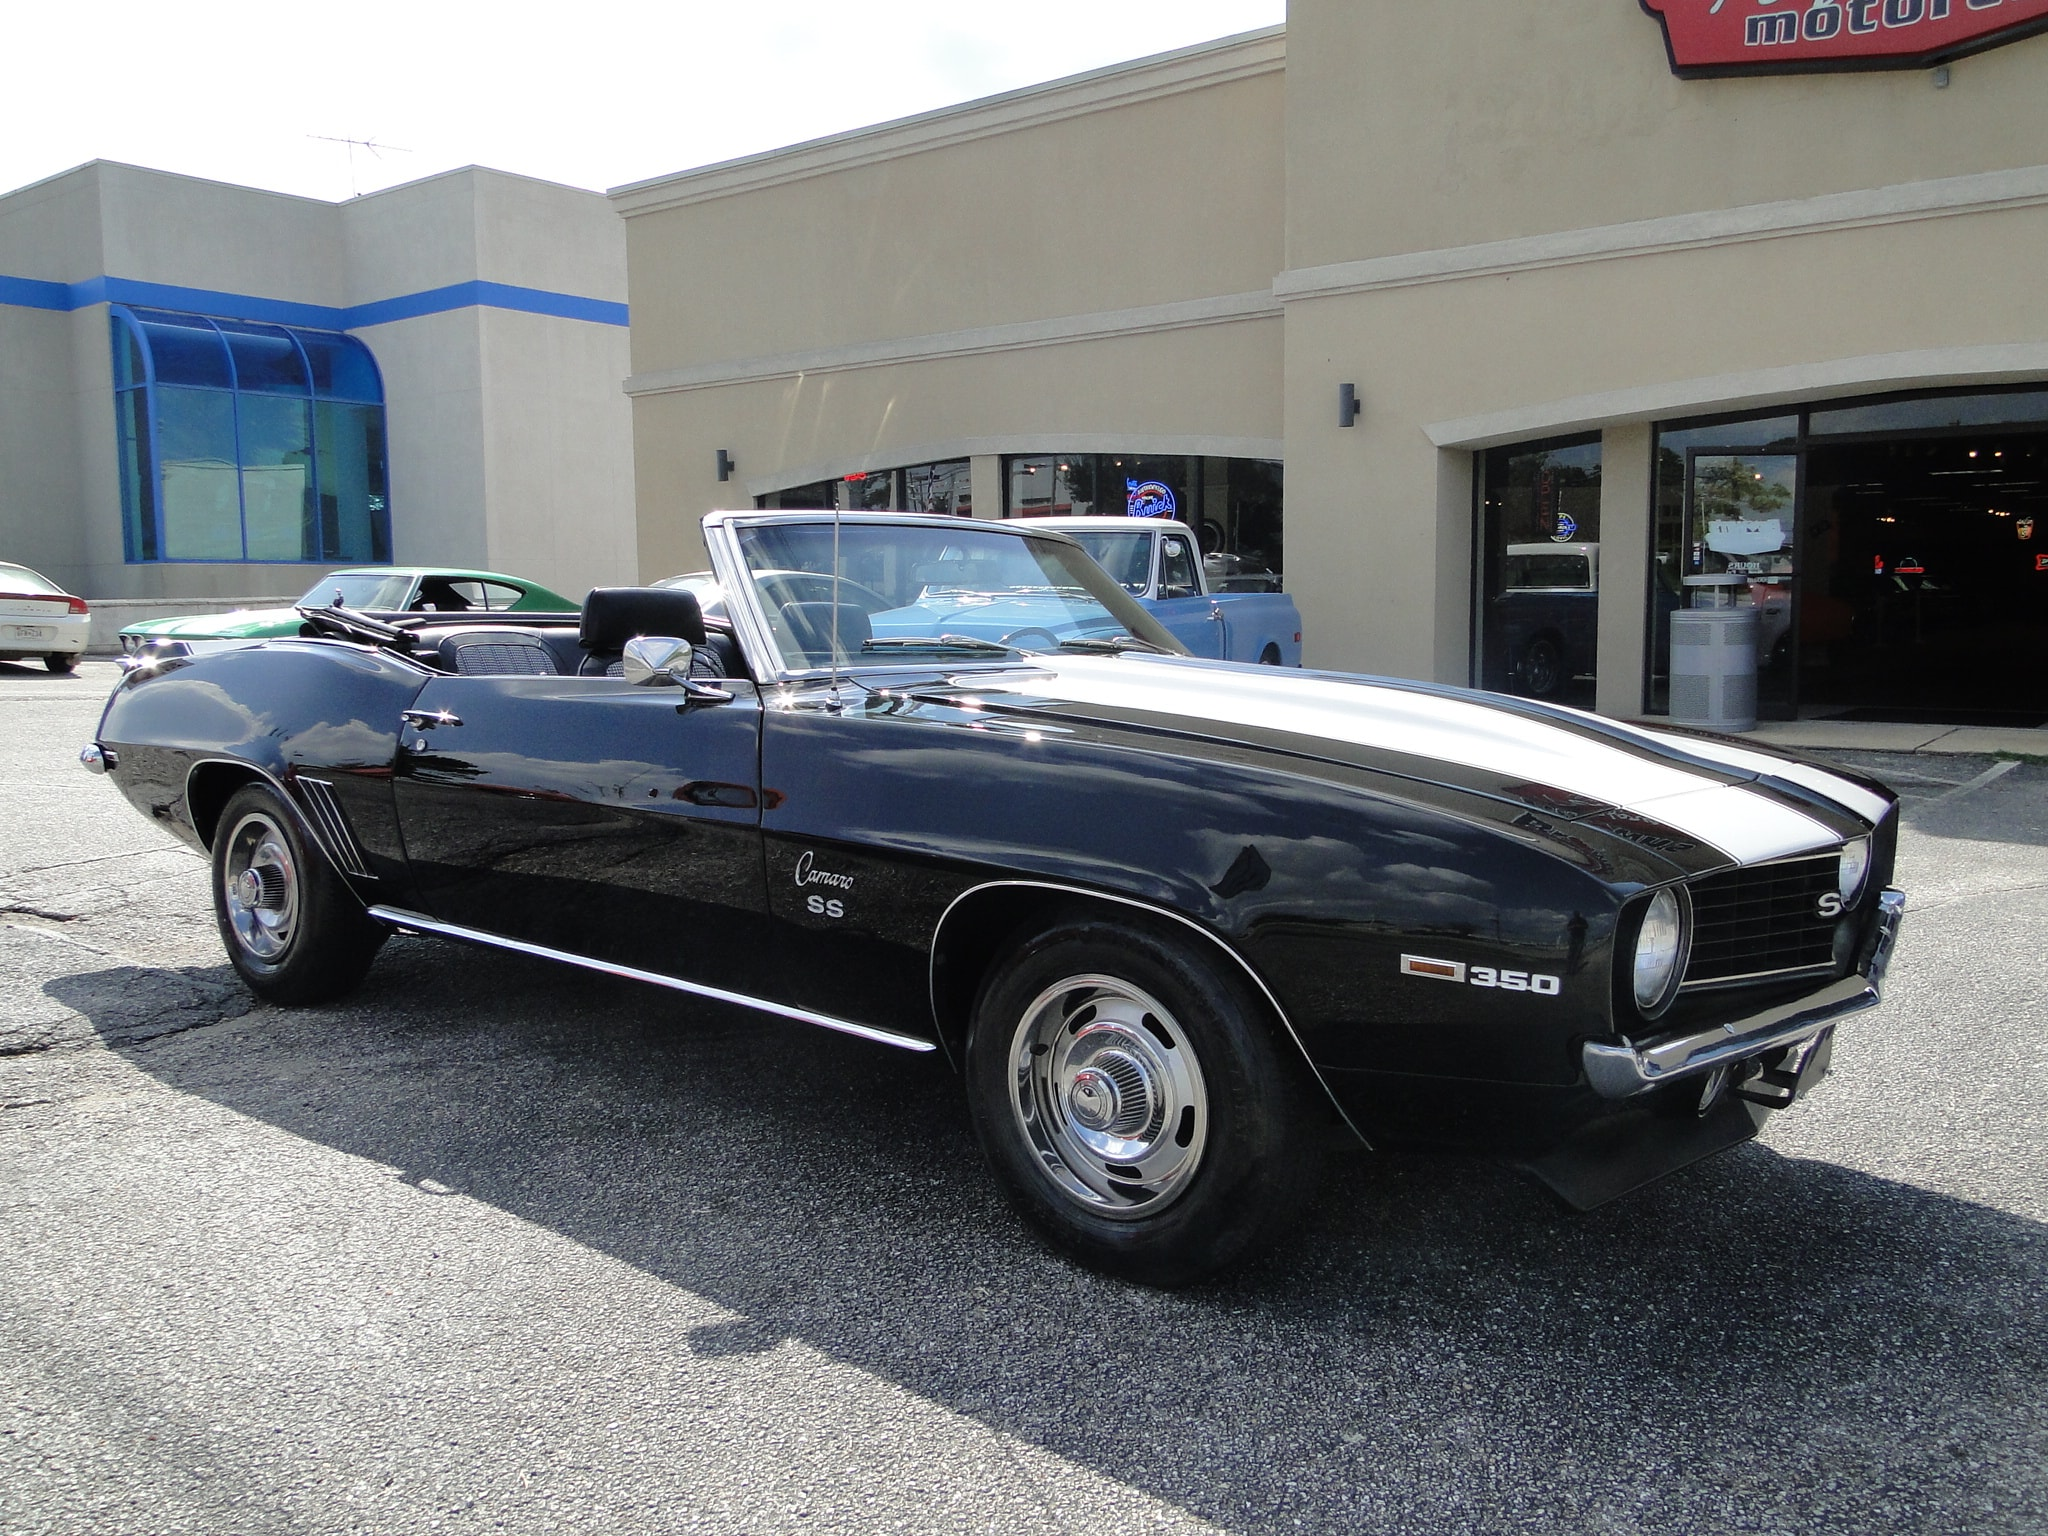 1969 Chevrolet Camaro Convertible Convertible 350 4 Speed Manual R0364